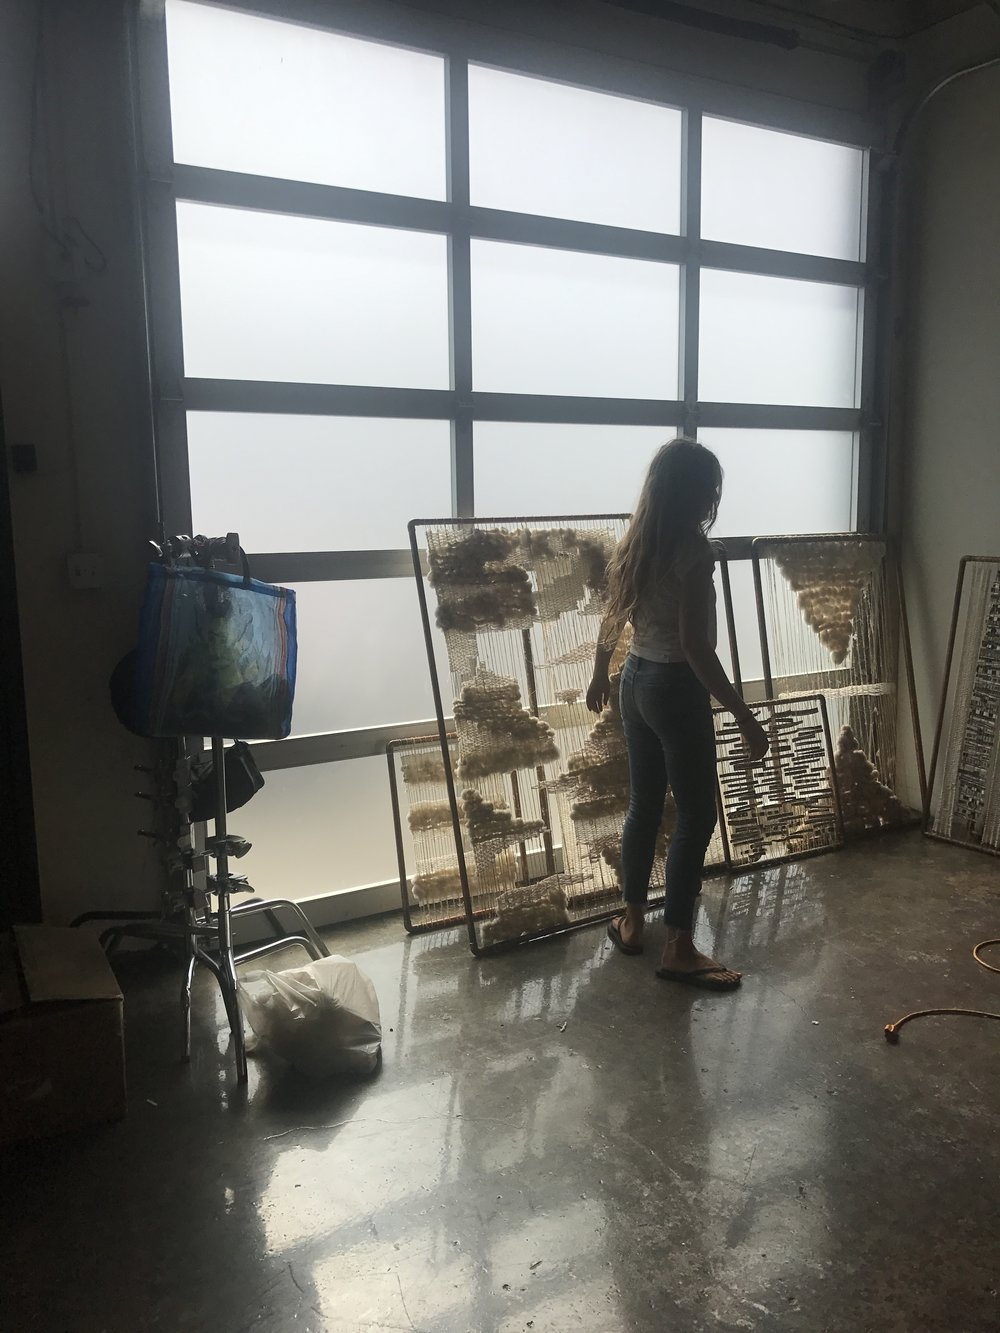 Filming inside the artist's studio.